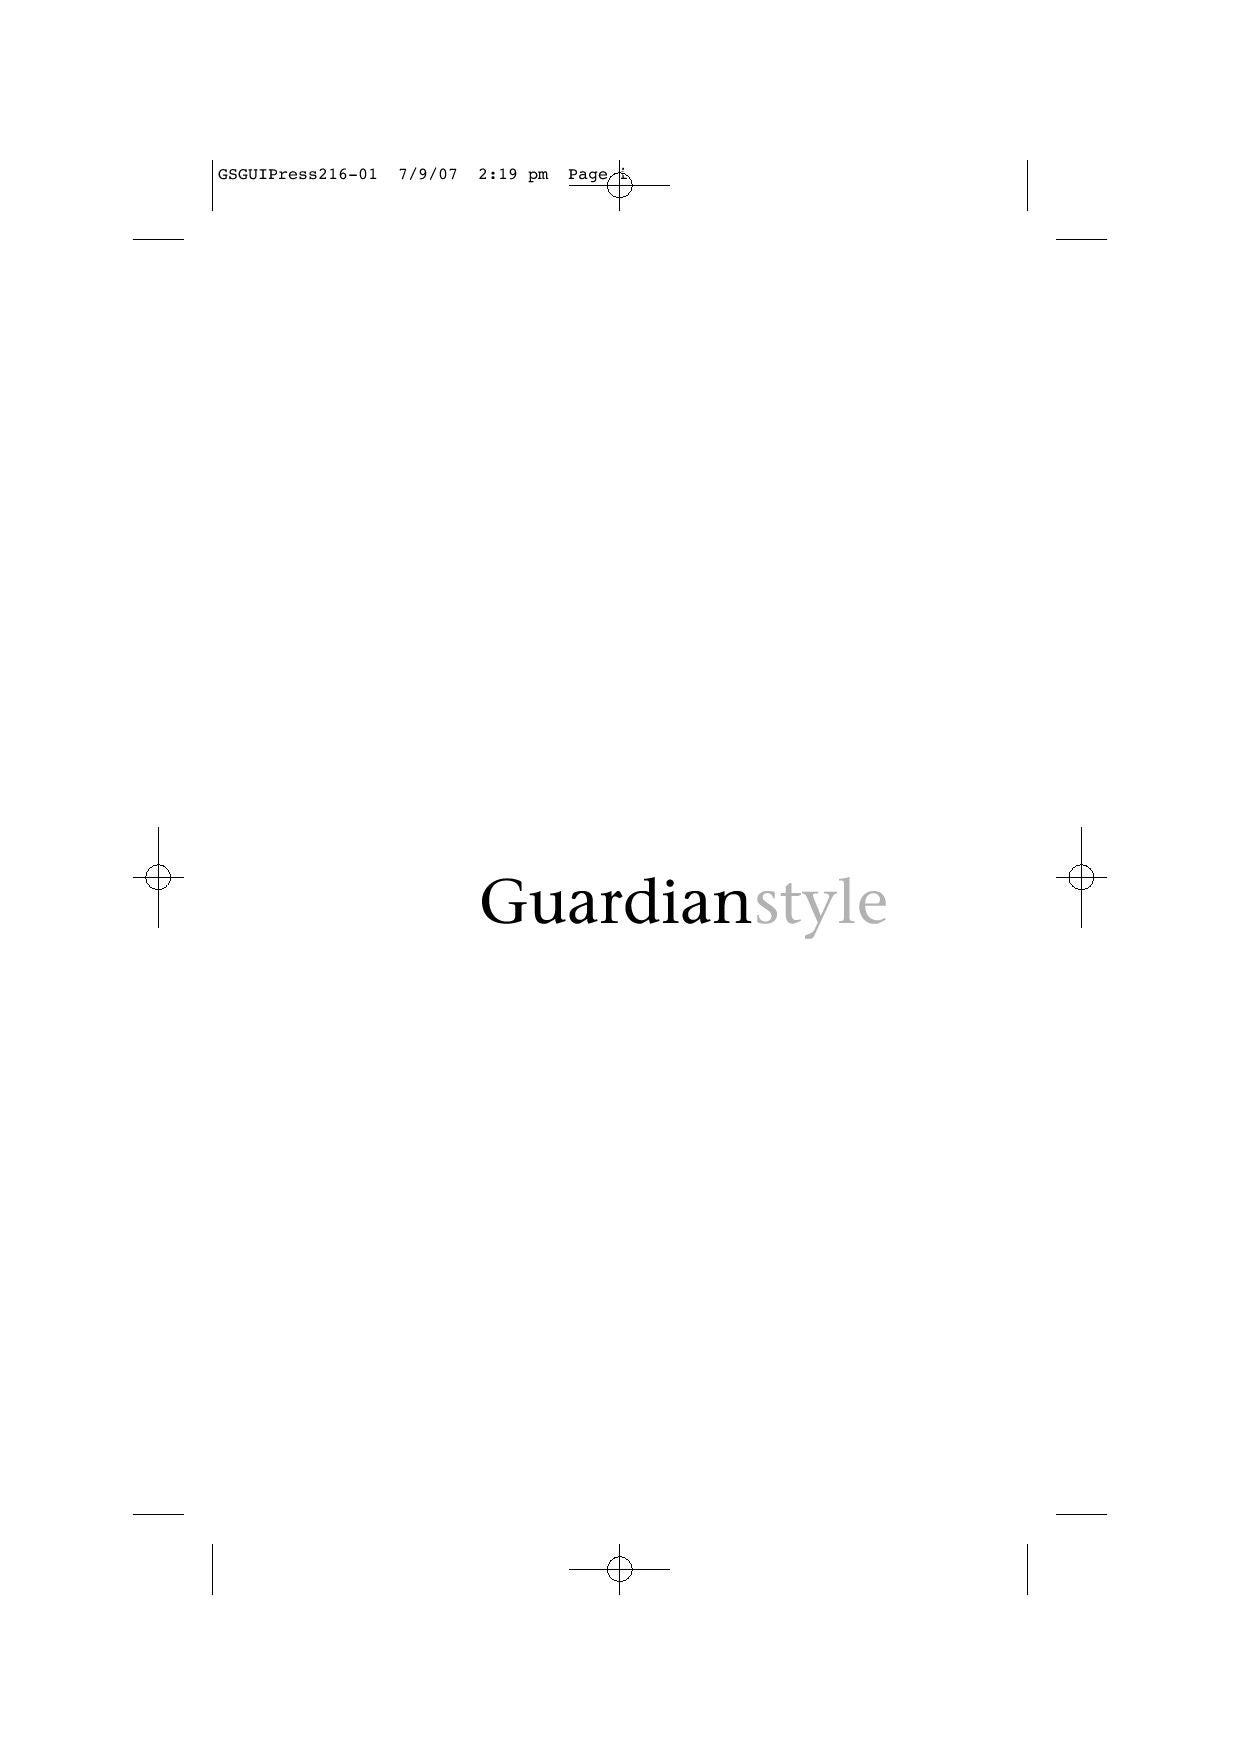 Guardianstyle by lucertolealguinzaglio issuu fandeluxe Image collections